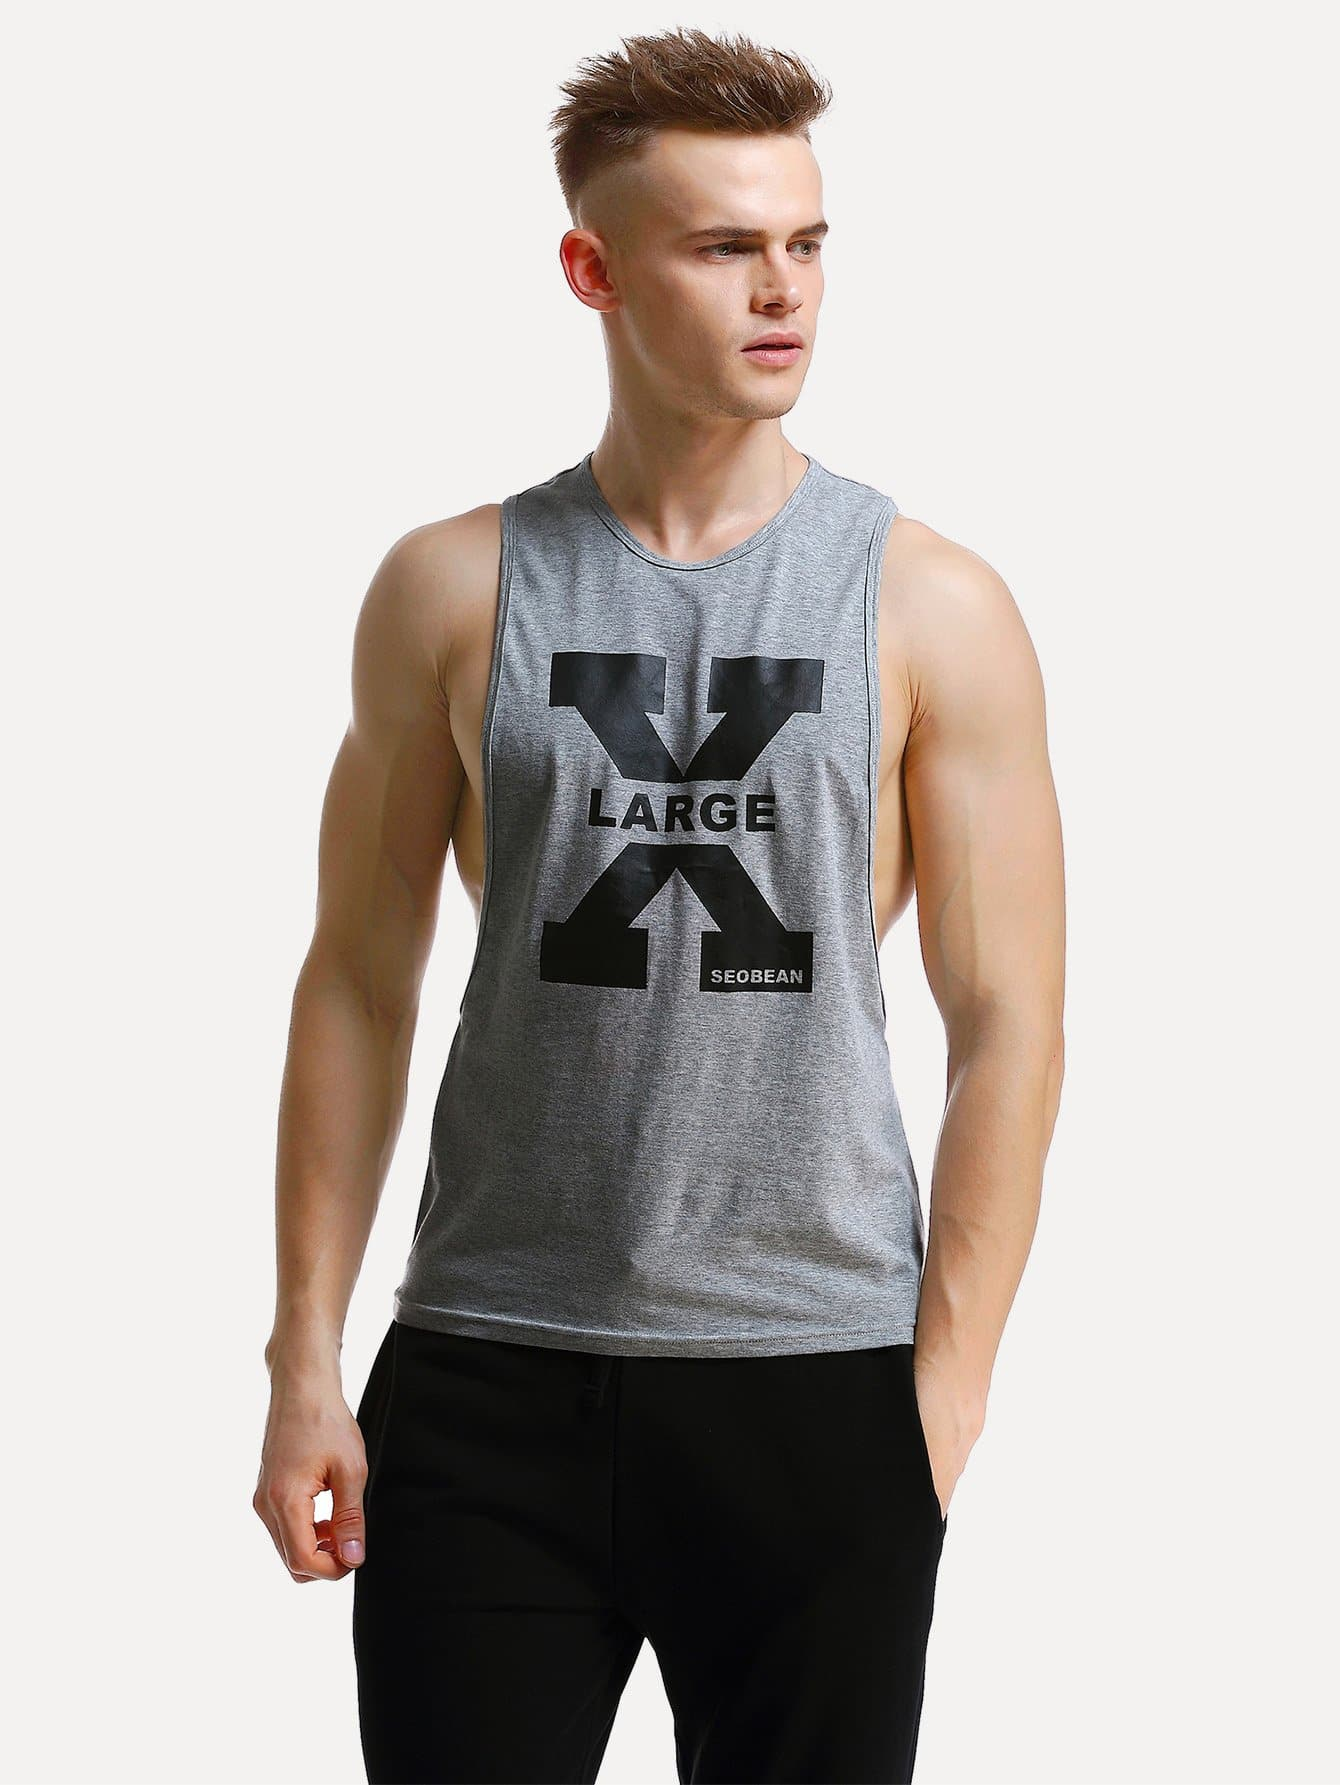 Men tank tops fashion 51